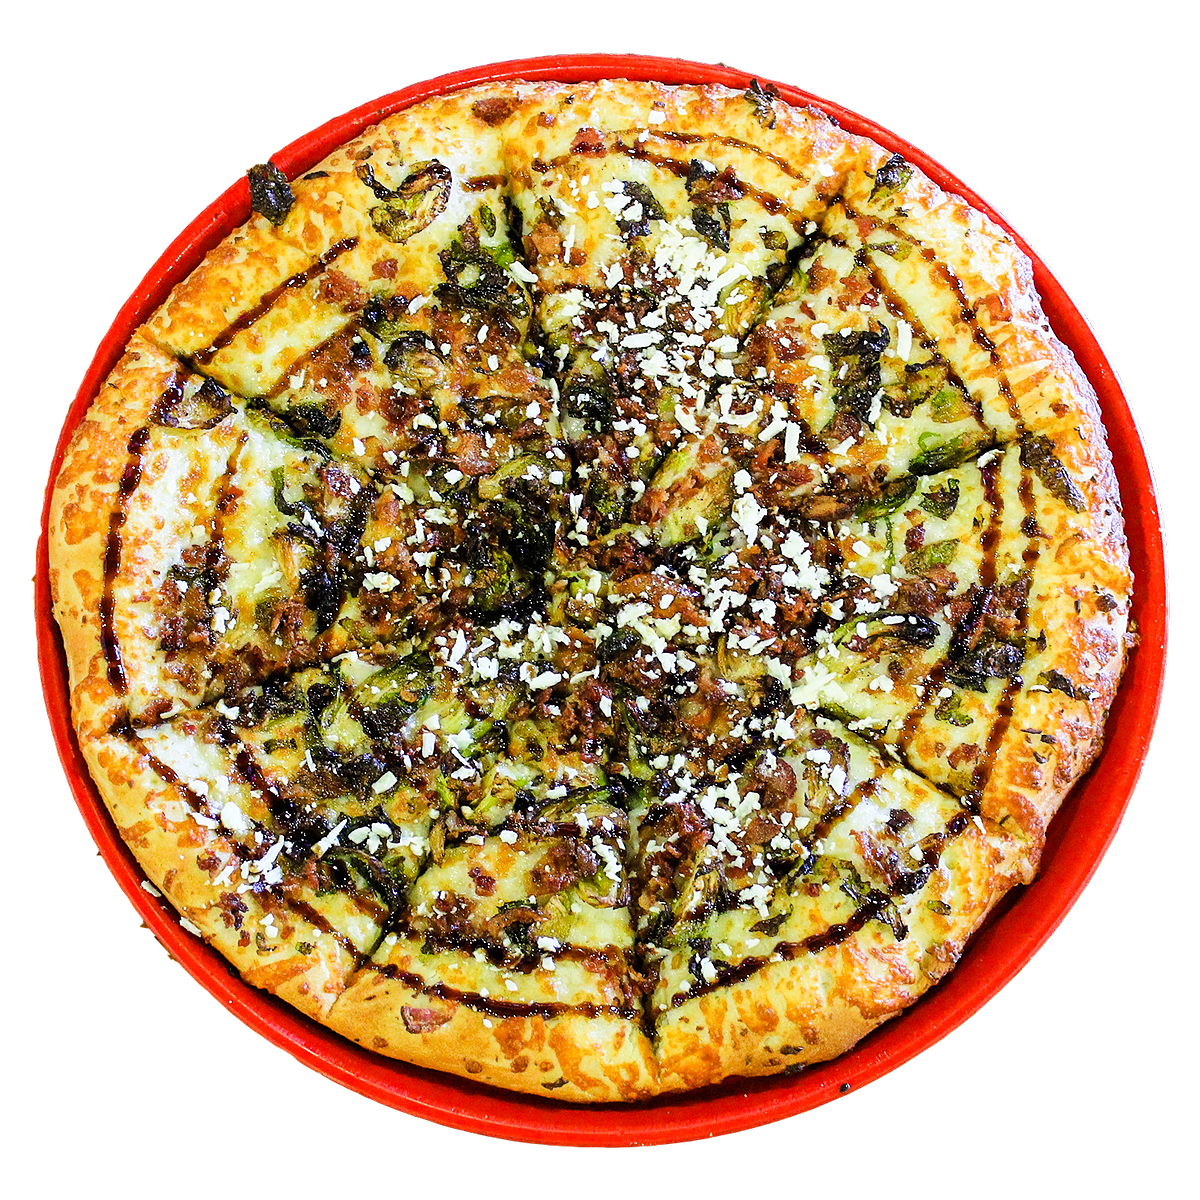 The AUGUST PIZZA OF THE MONTH has an olive oil base, mozzarella, bacon, Brussel Sprouts, topped with feta and a balsamic drizzle.